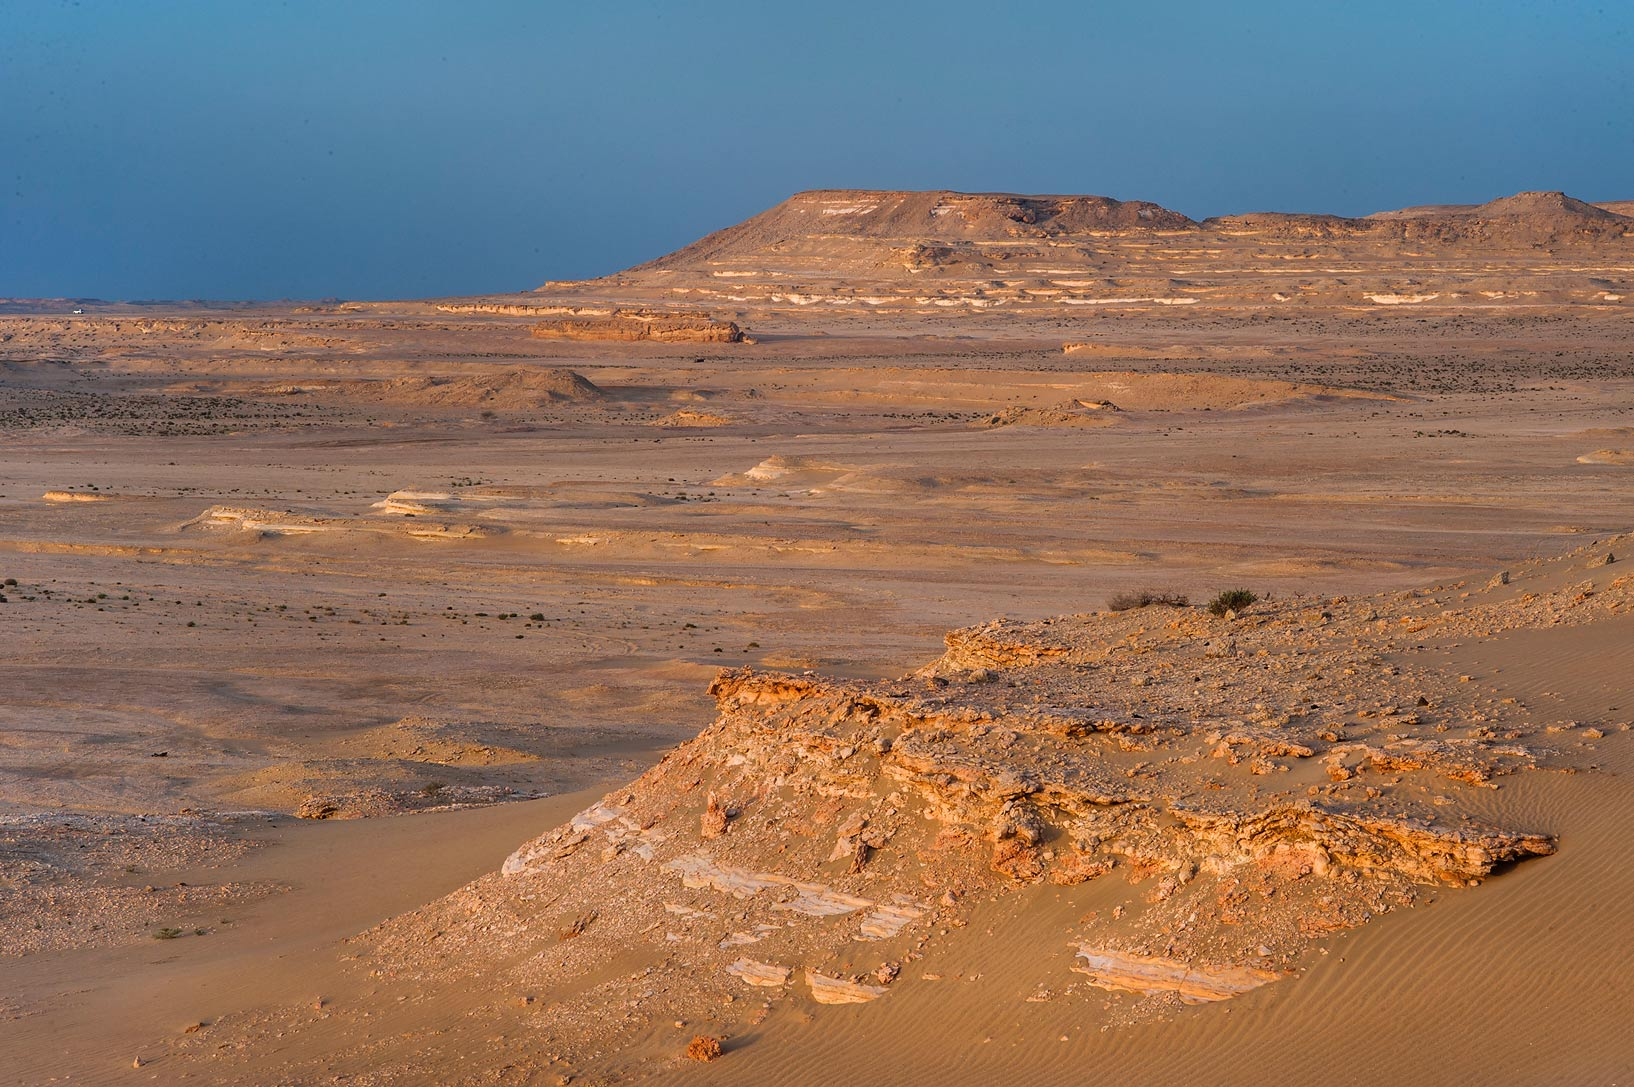 Slopes of Jebel Al-Nakhsh (Khashm an Nakhsh). South-western Qatar